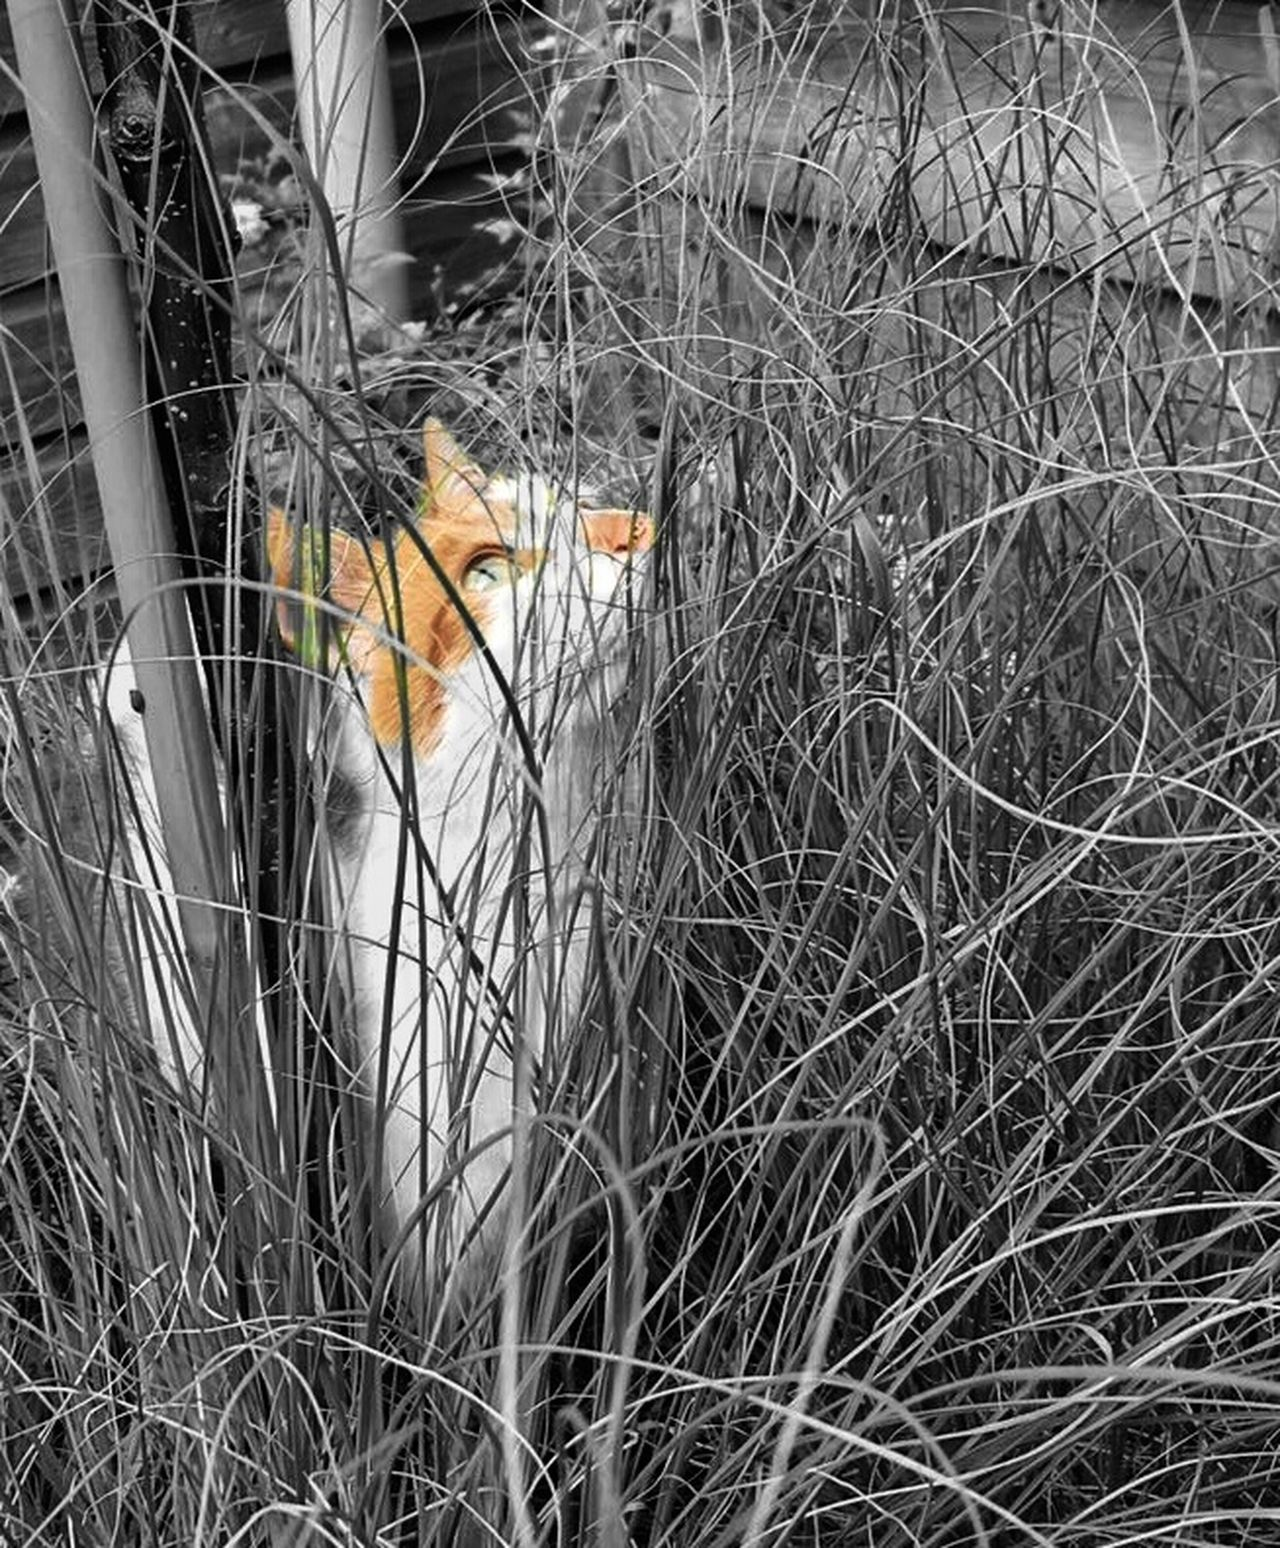 Neighborhood Cat Hiding In The Grass Looking Up with Intense Eyes Mesmerized by Something Unusual Alphen Aan Den Rijn Netherlands (c) 2016 Shangita Bose All Rights Reserved From My Point Of View Adventure Club Colorsplash Monochrome Black And White Showcase July A Bird's Eye View